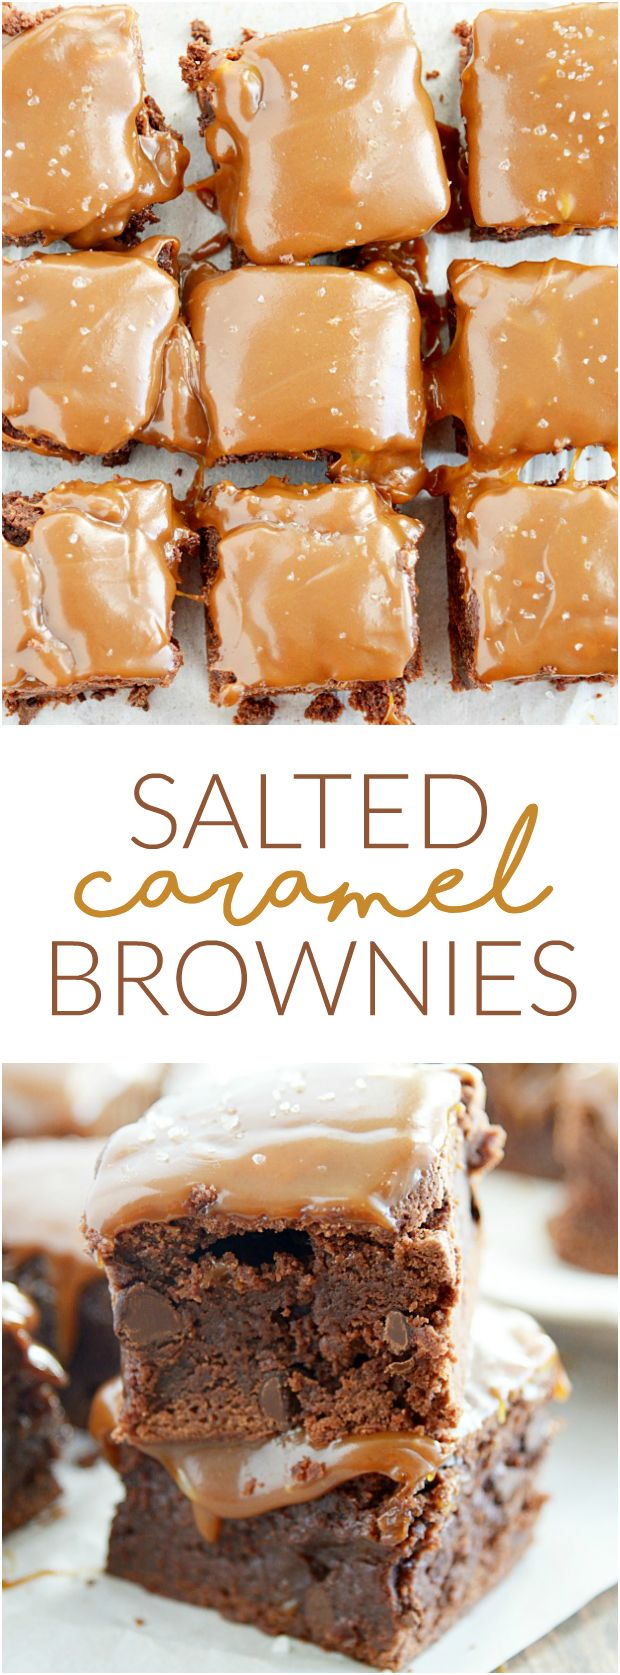 Salted Caramel Brownies are easier than you think to make and are so delicious. These are THE BEST!